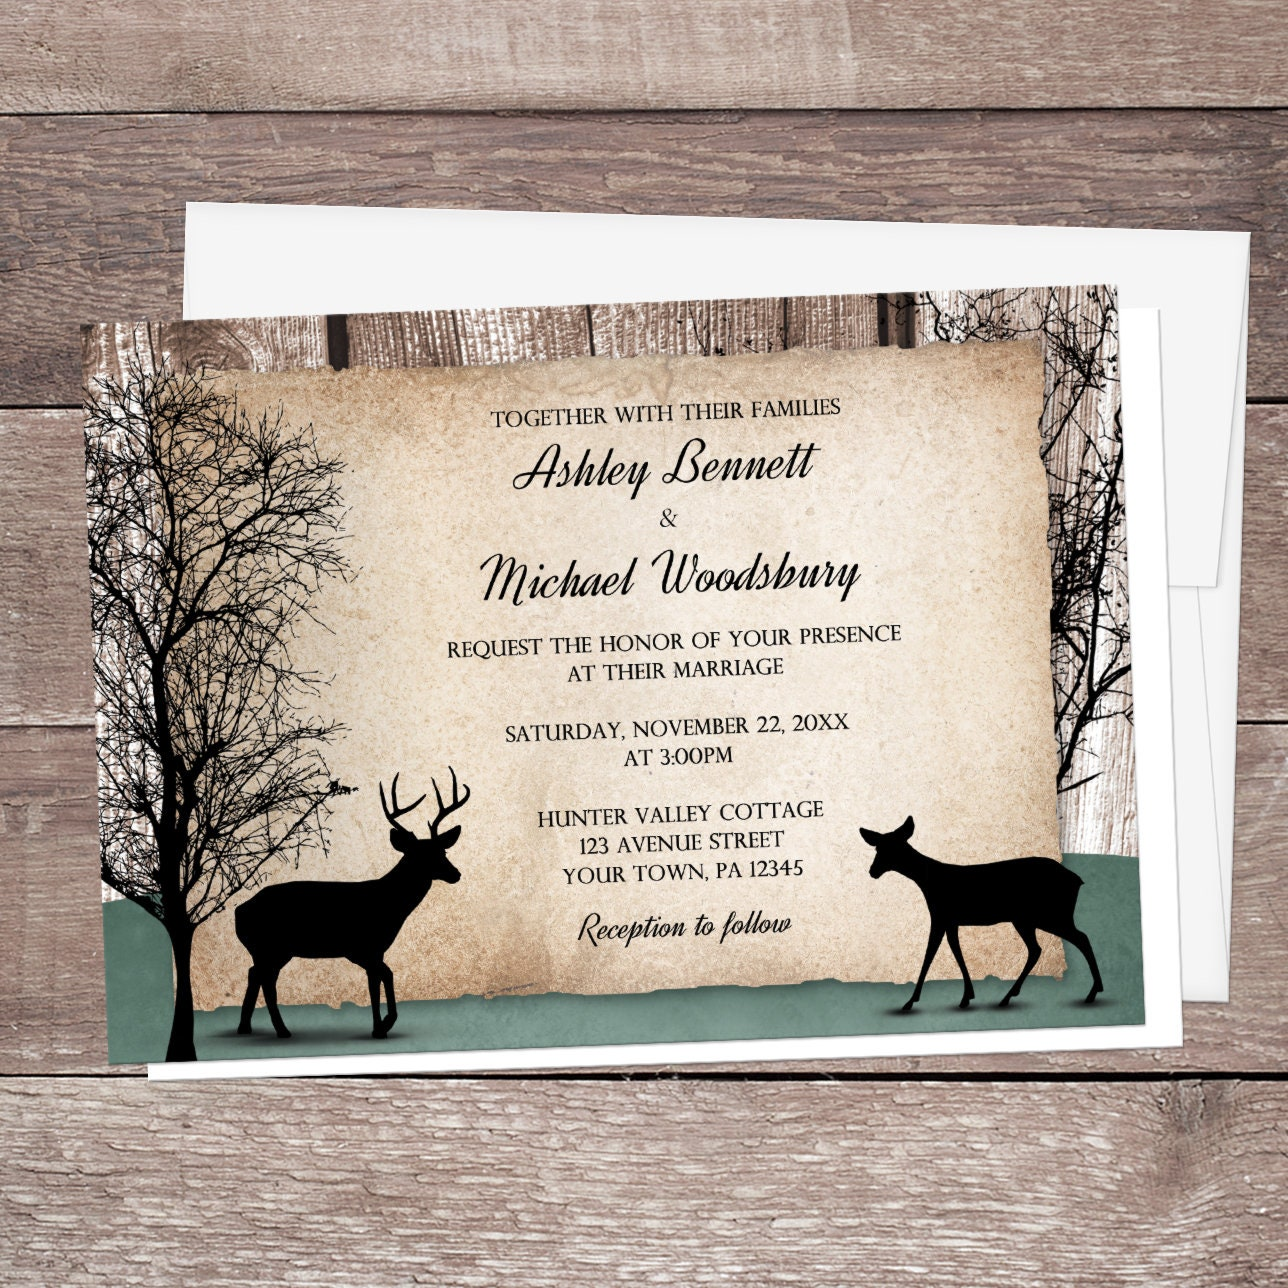 Rustic Woodsy Wedding Ideas: Rustic Woodsy Deer Wedding Invitations Winter Trees And